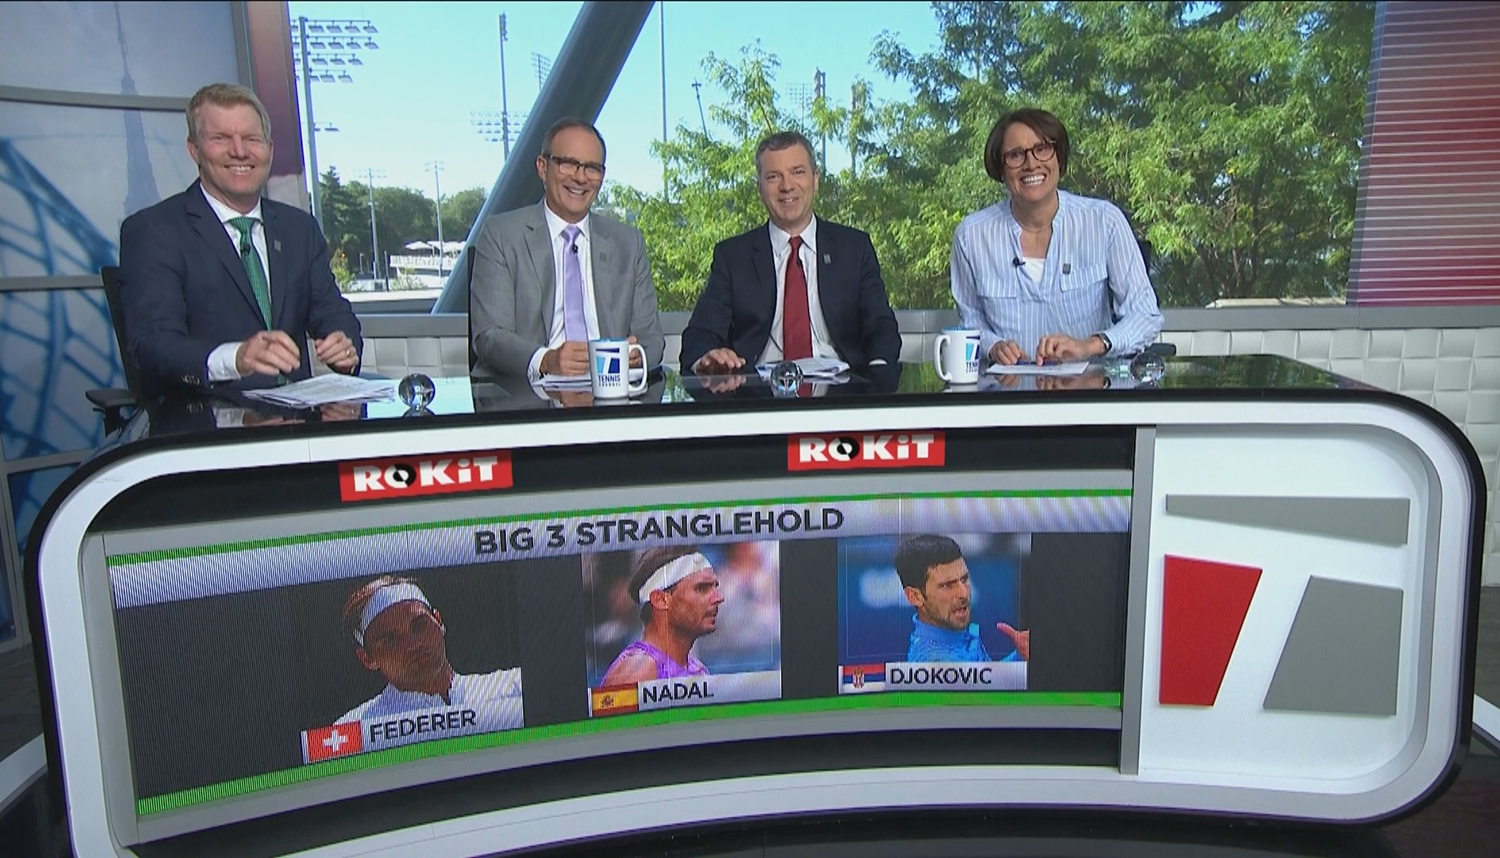 Live From the US Open: Tennis Channel Wraps Up Another Busy